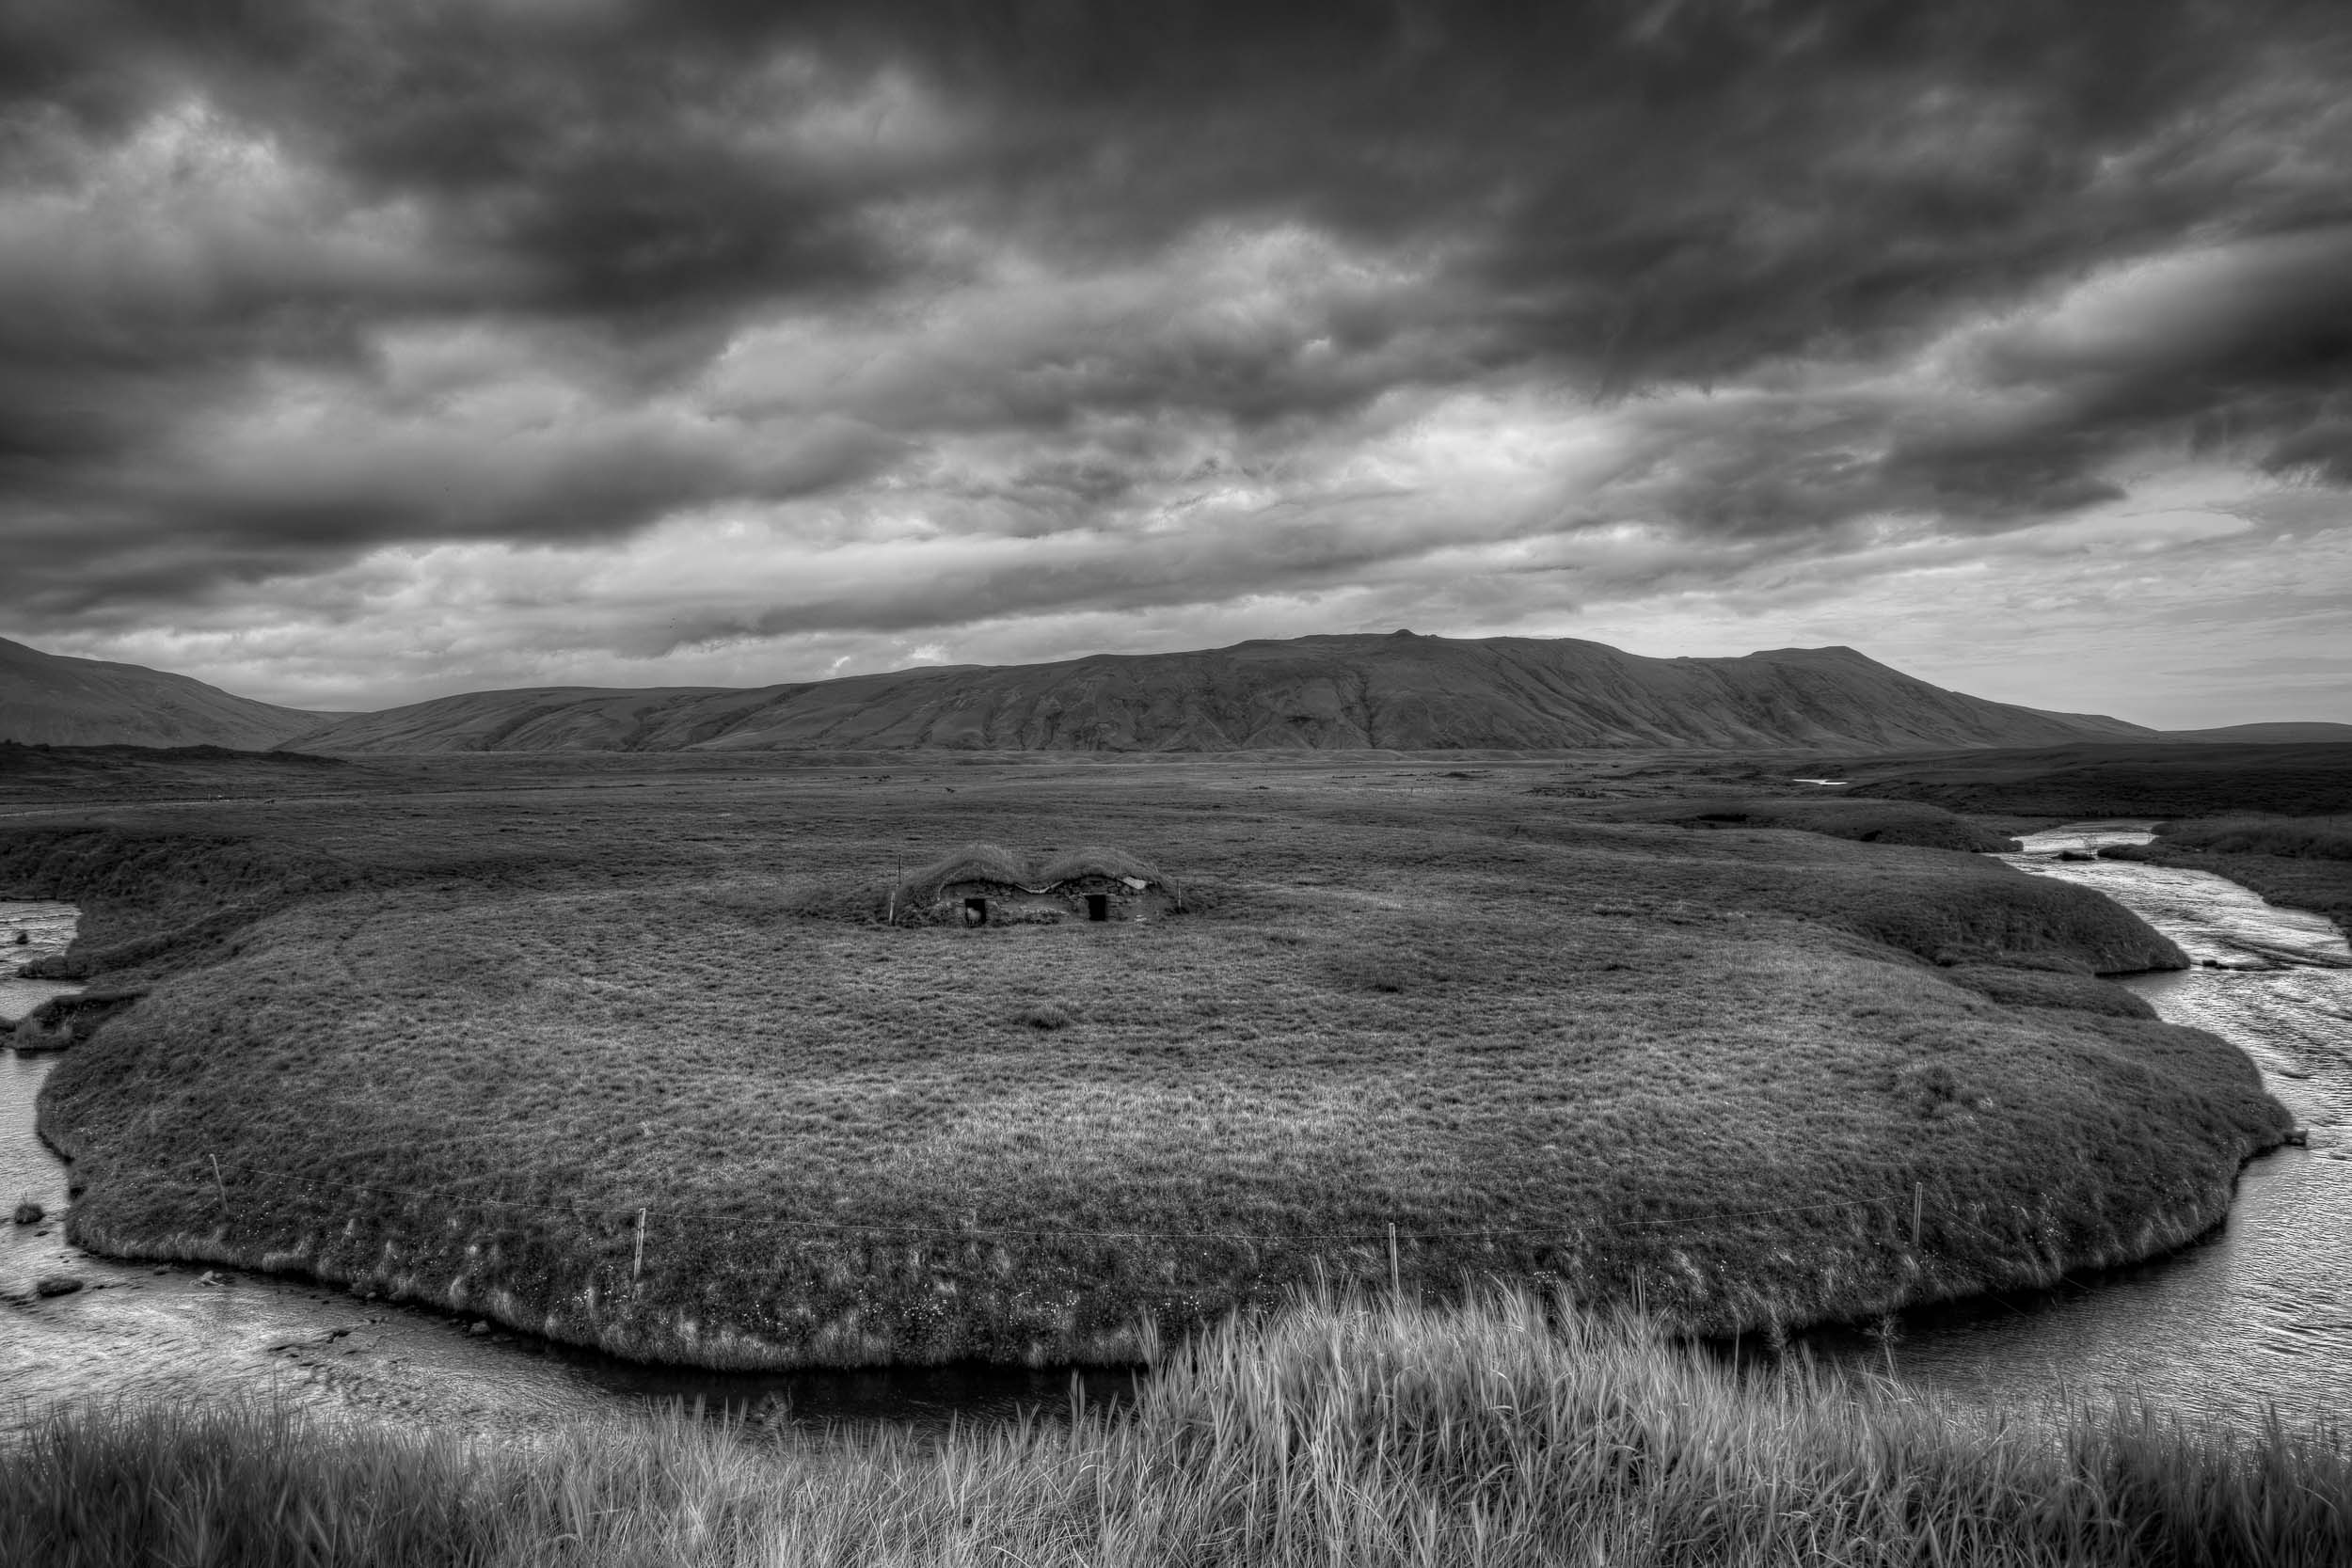 A distant    sheep shelter    in an extremely lush, well watered pasture in    rural Iceland   .